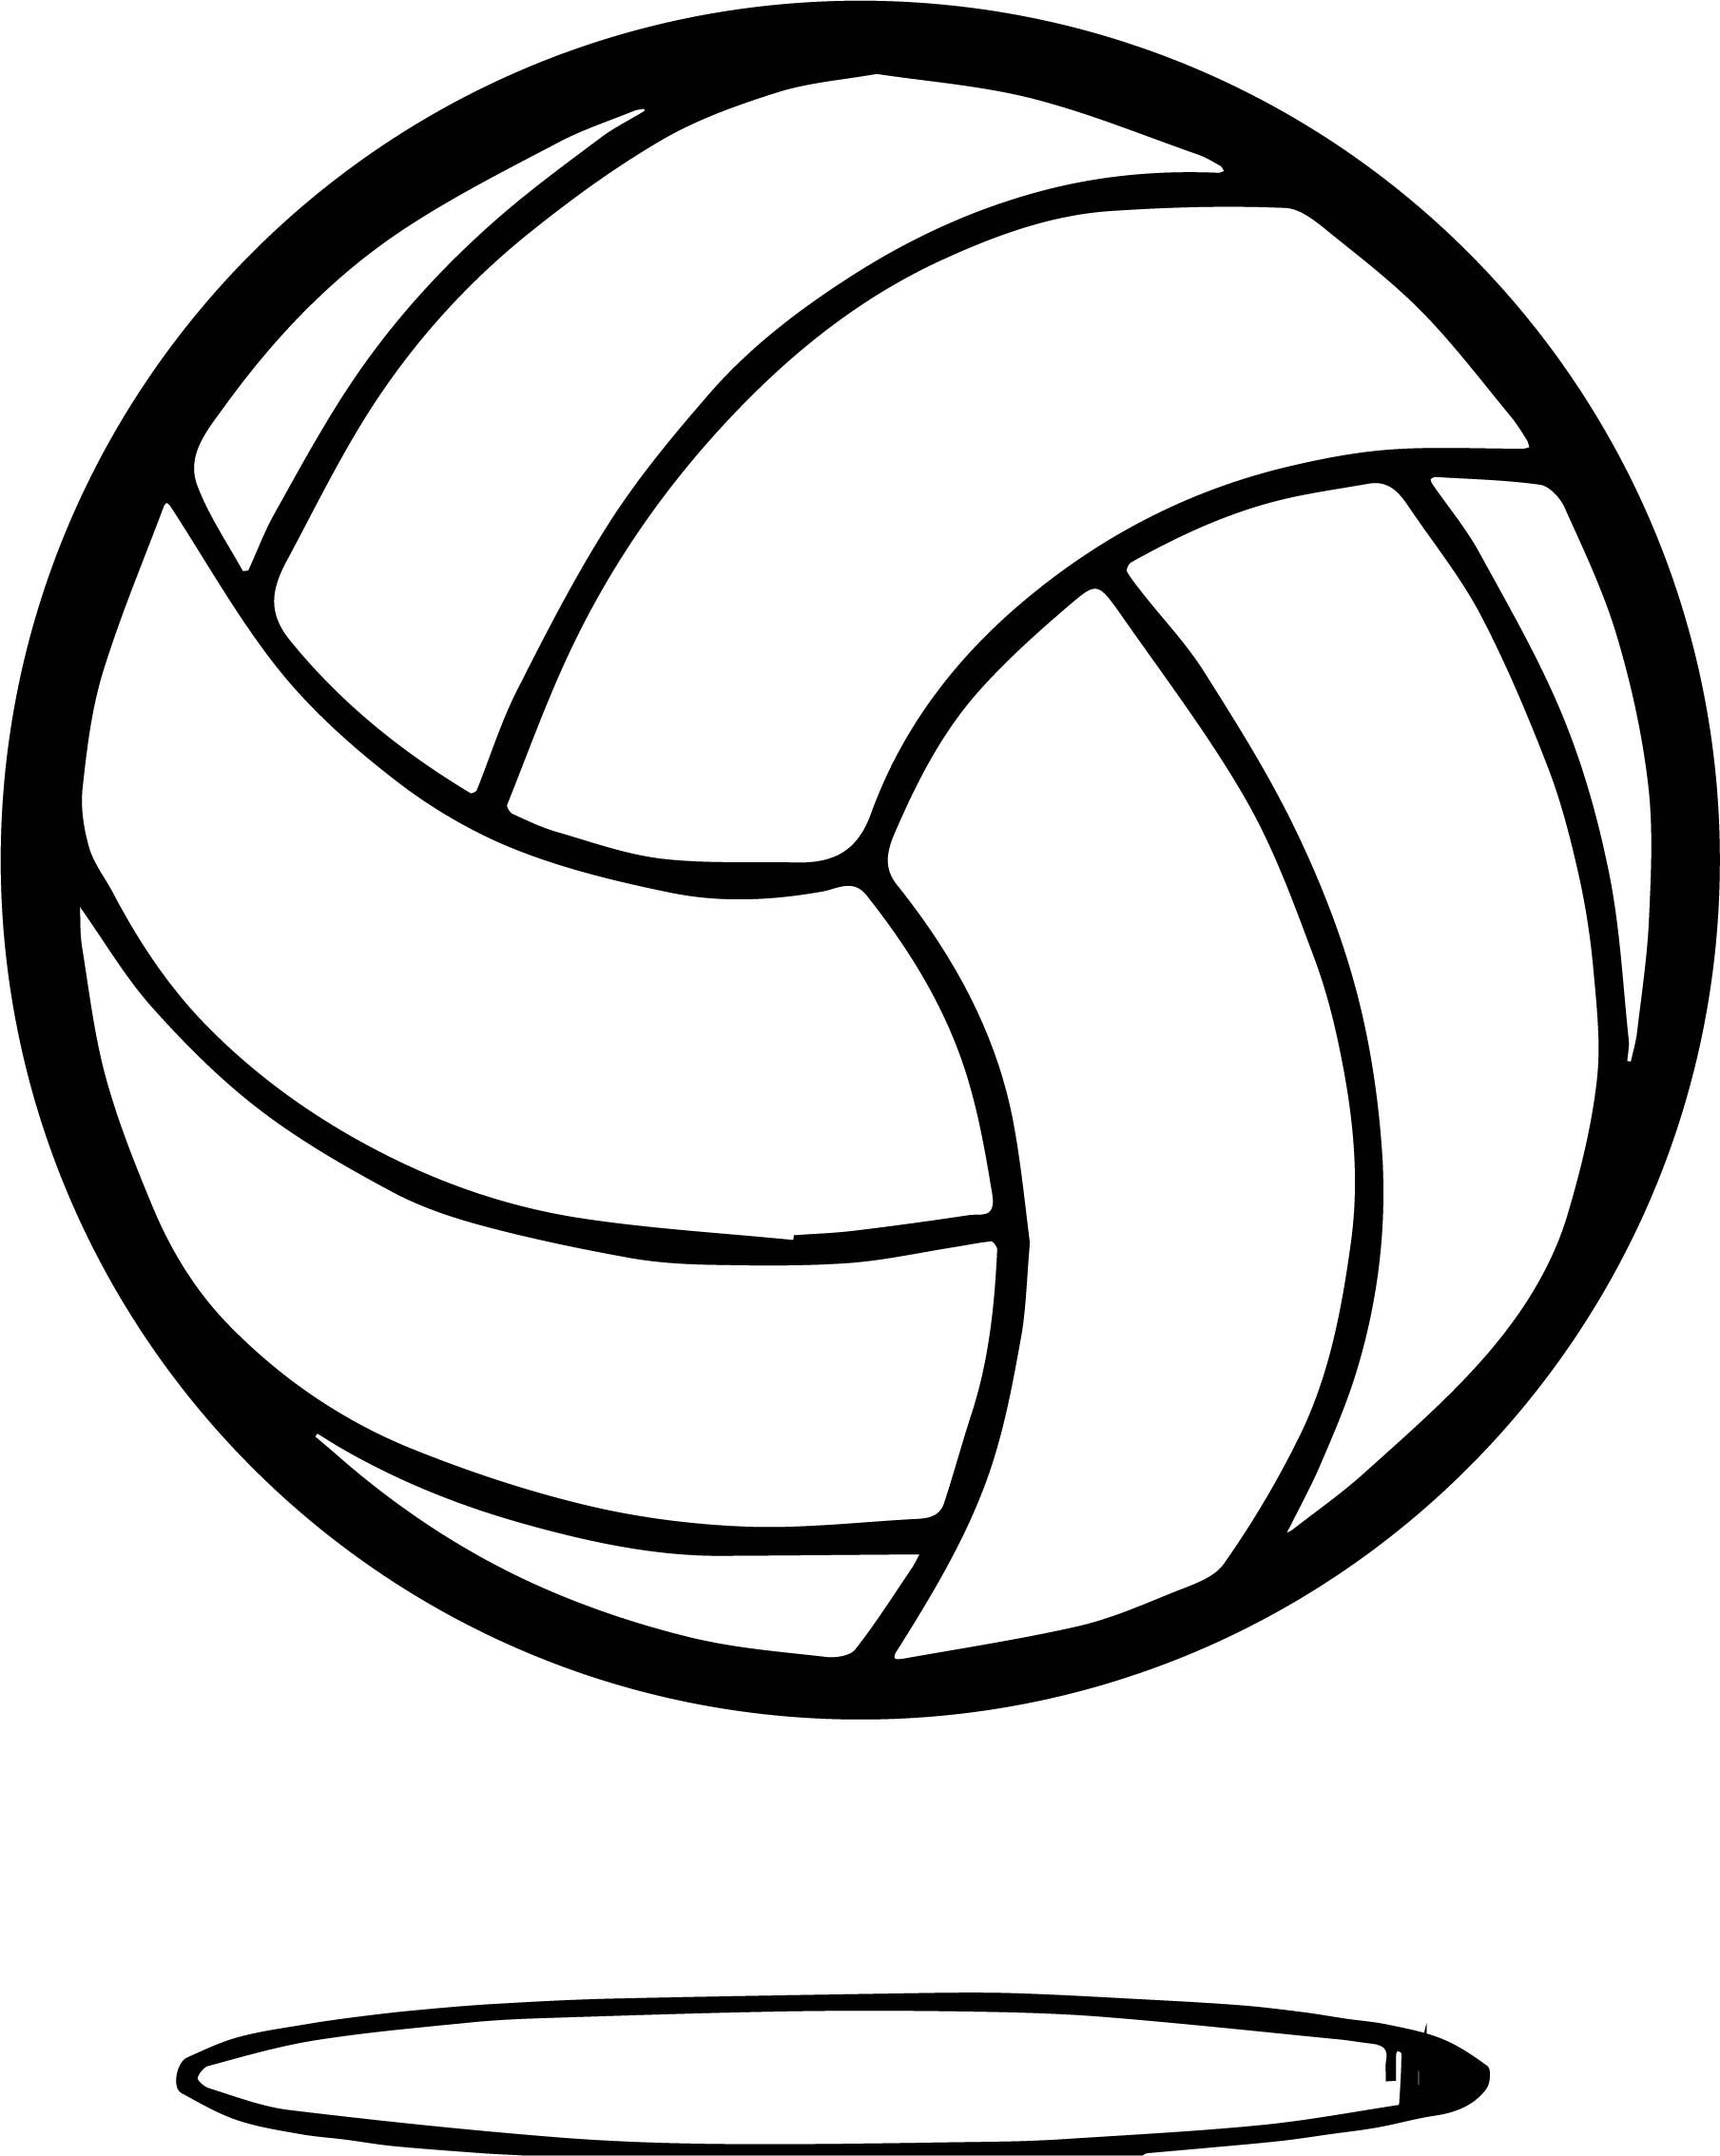 Nice Volleyball Ball Up Coloring Page Coloring Pages Curious George Coloring Pages Coloring Sheets